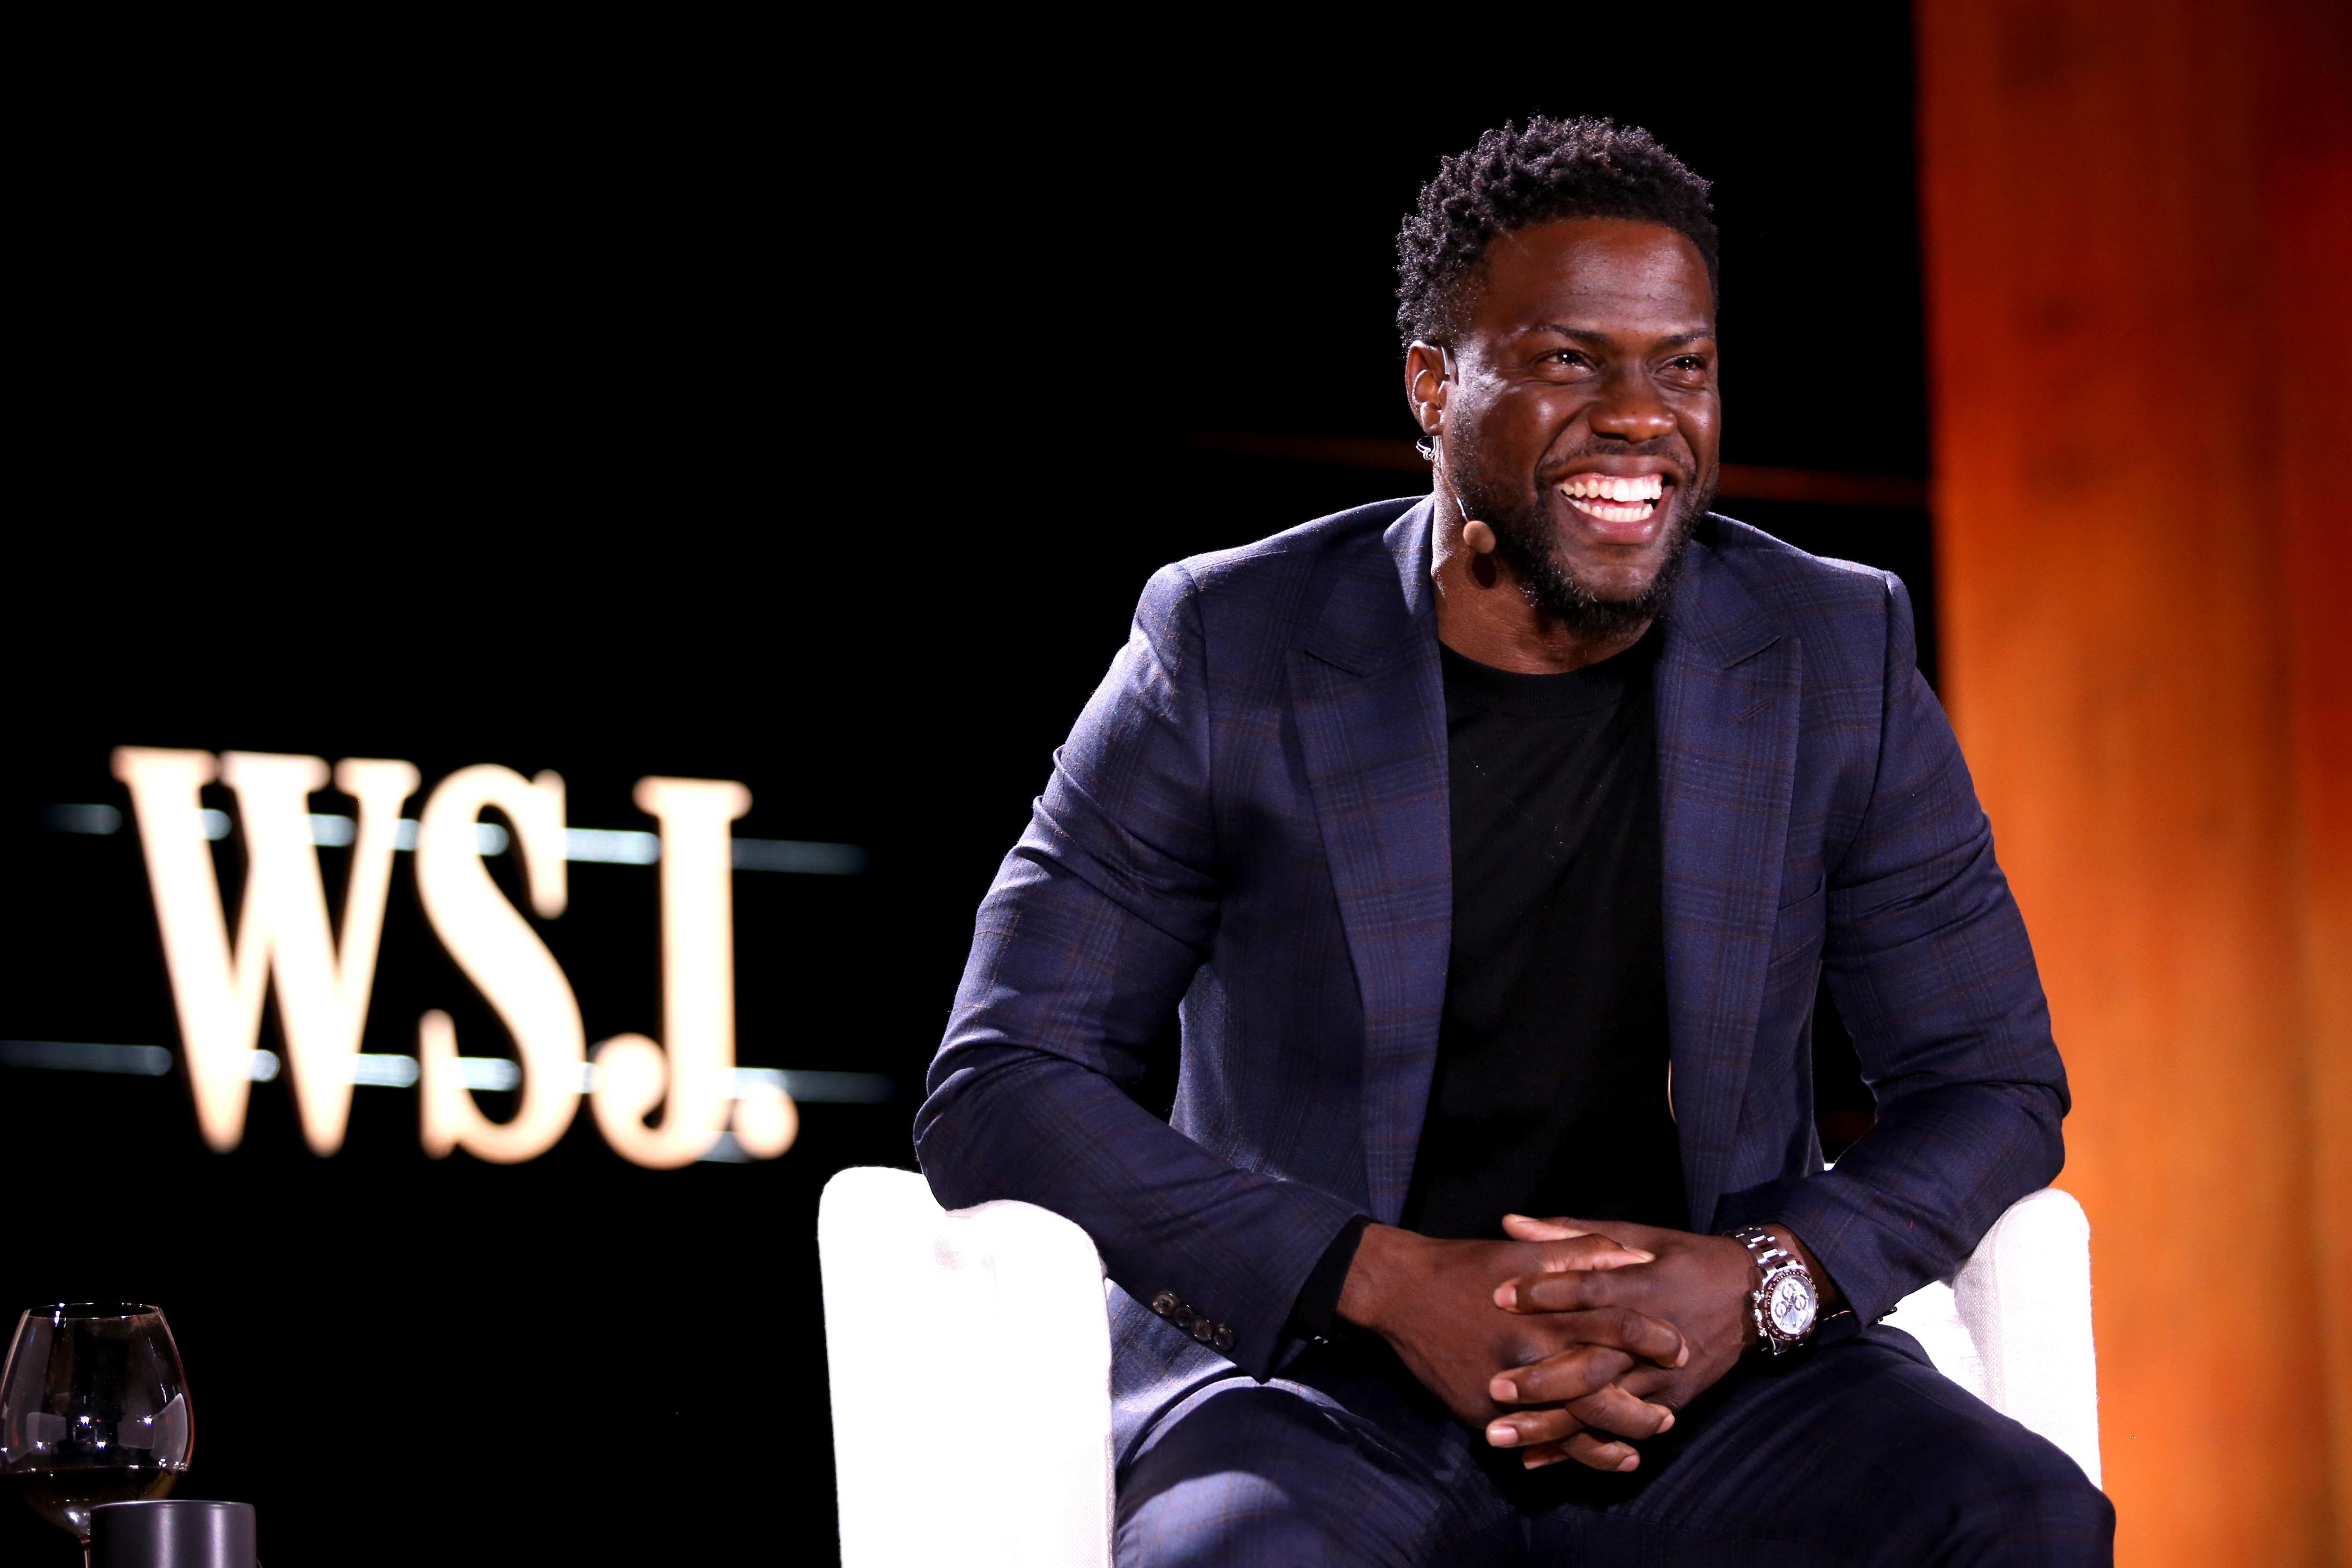 Kevin Hart sitting on a stage, smiling and laughing.